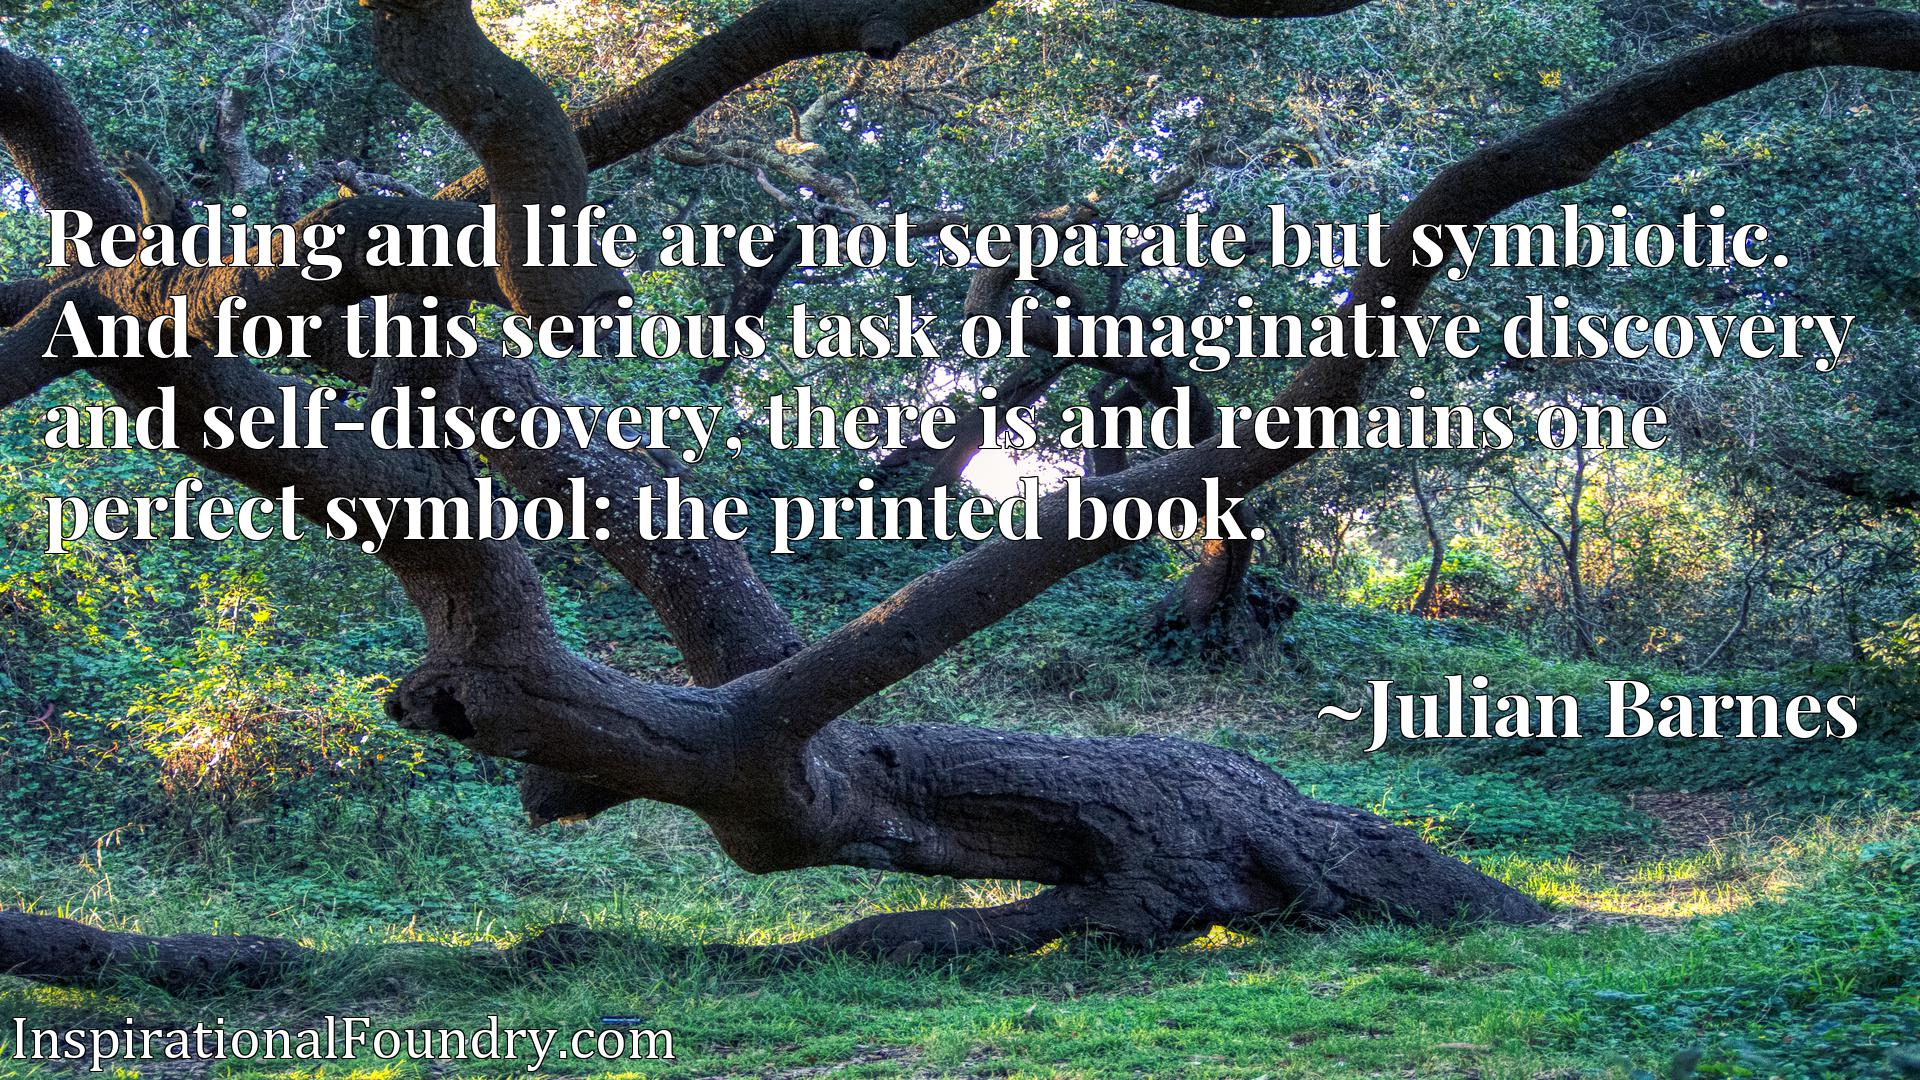 Reading and life are not separate but symbiotic. And for this serious task of imaginative discovery and self-discovery, there is and remains one perfect symbol: the printed book.